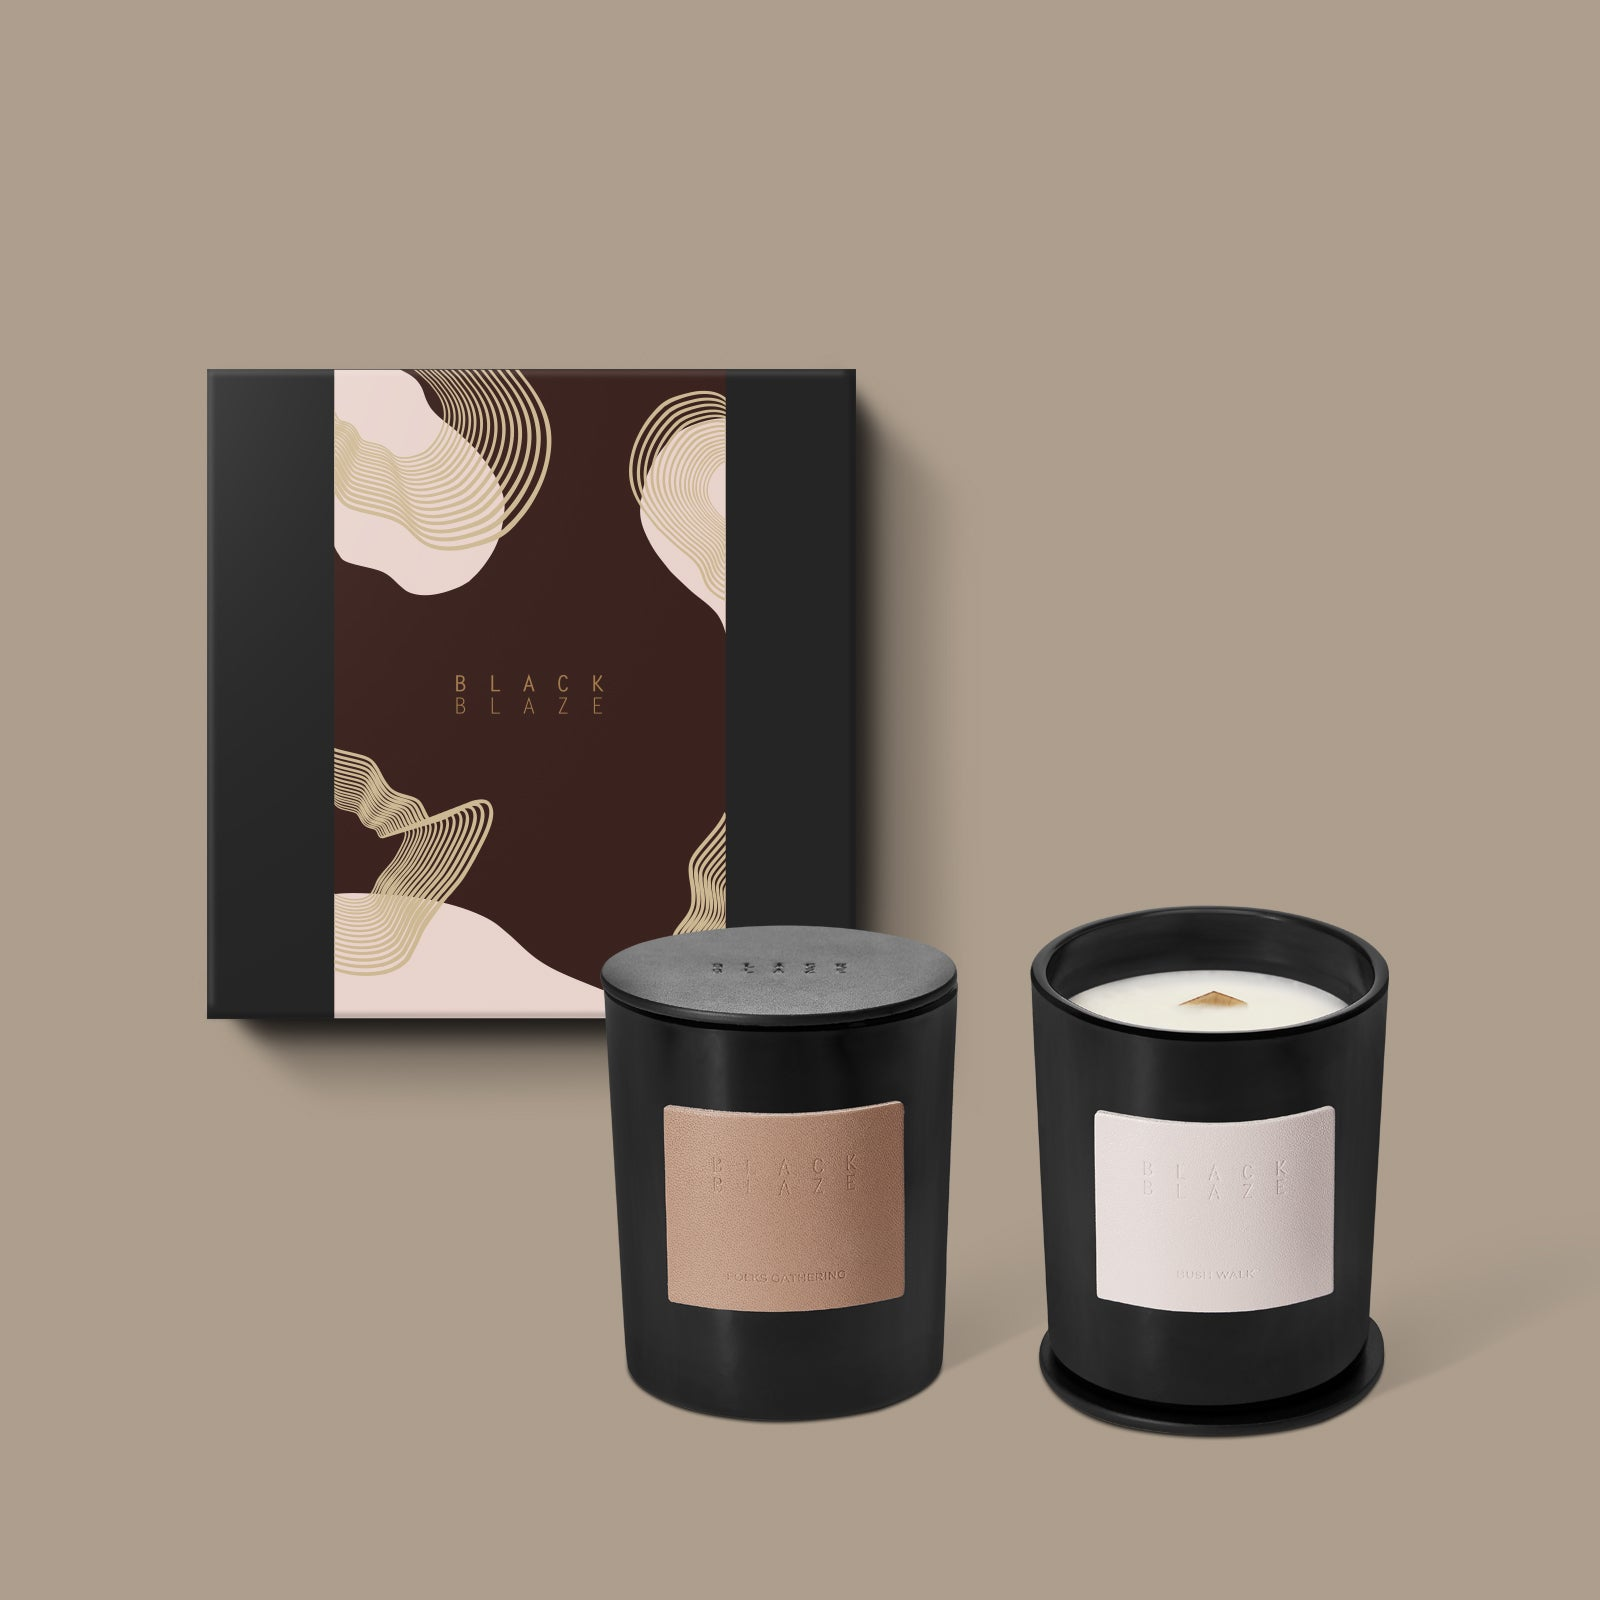 Candle Duo Kit, Gift Kit, BLACK BLAZE, BLACK BLAZE - BLACK BLAZE | Scents of Australia | Natural Home Fragrance Label  | Australia's 1St Wooden Wick Candle